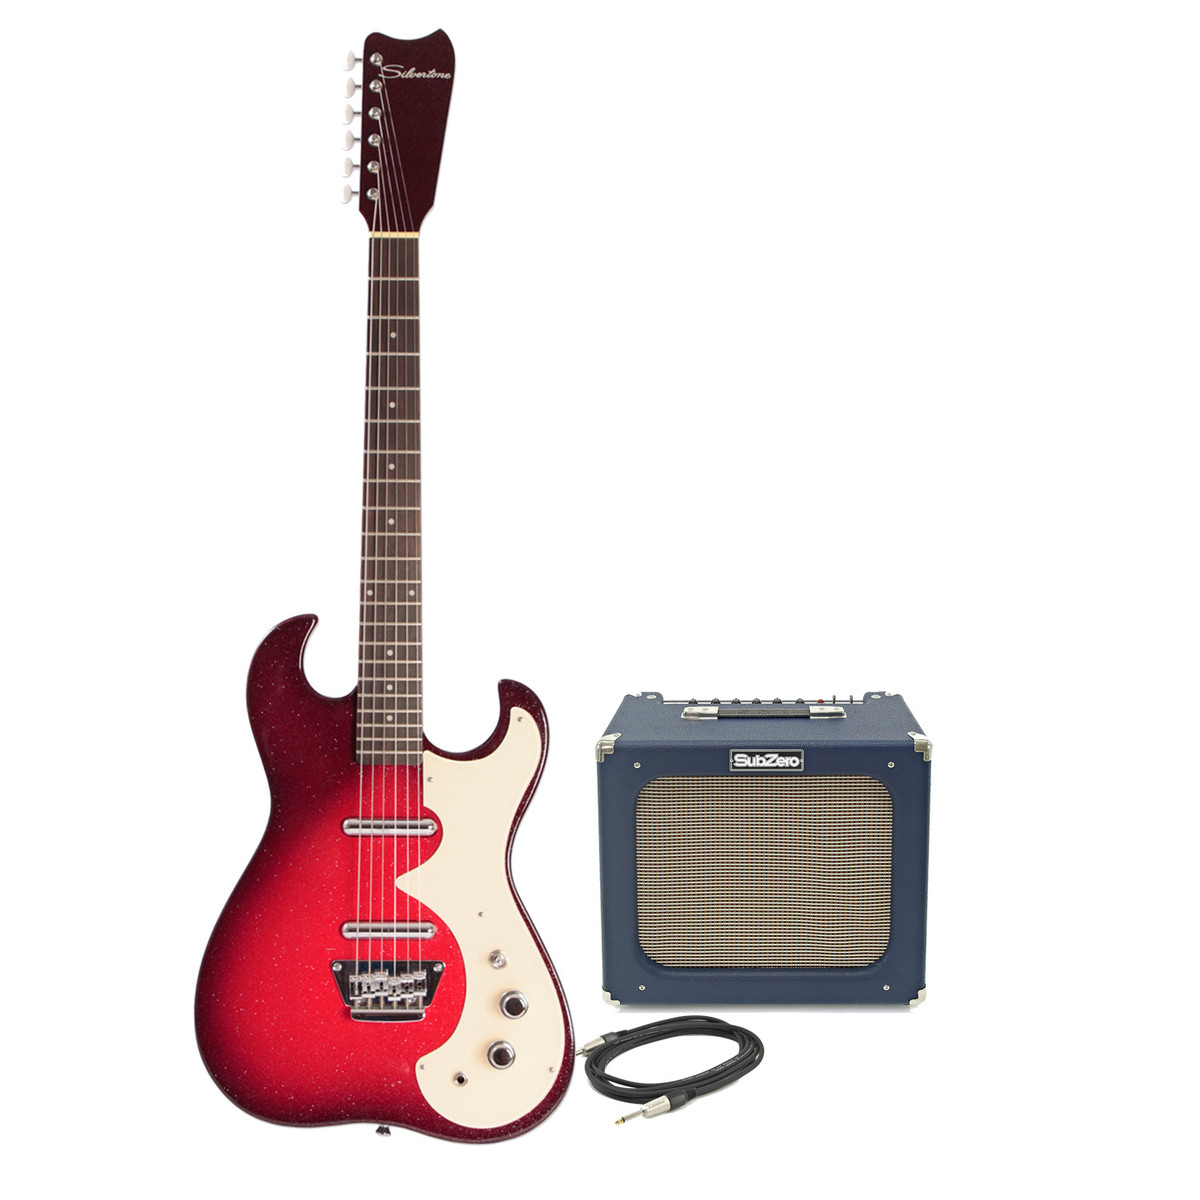 silvertone 1449 electric guitar subzero tube 20r pack red sparkle at gear4music. Black Bedroom Furniture Sets. Home Design Ideas